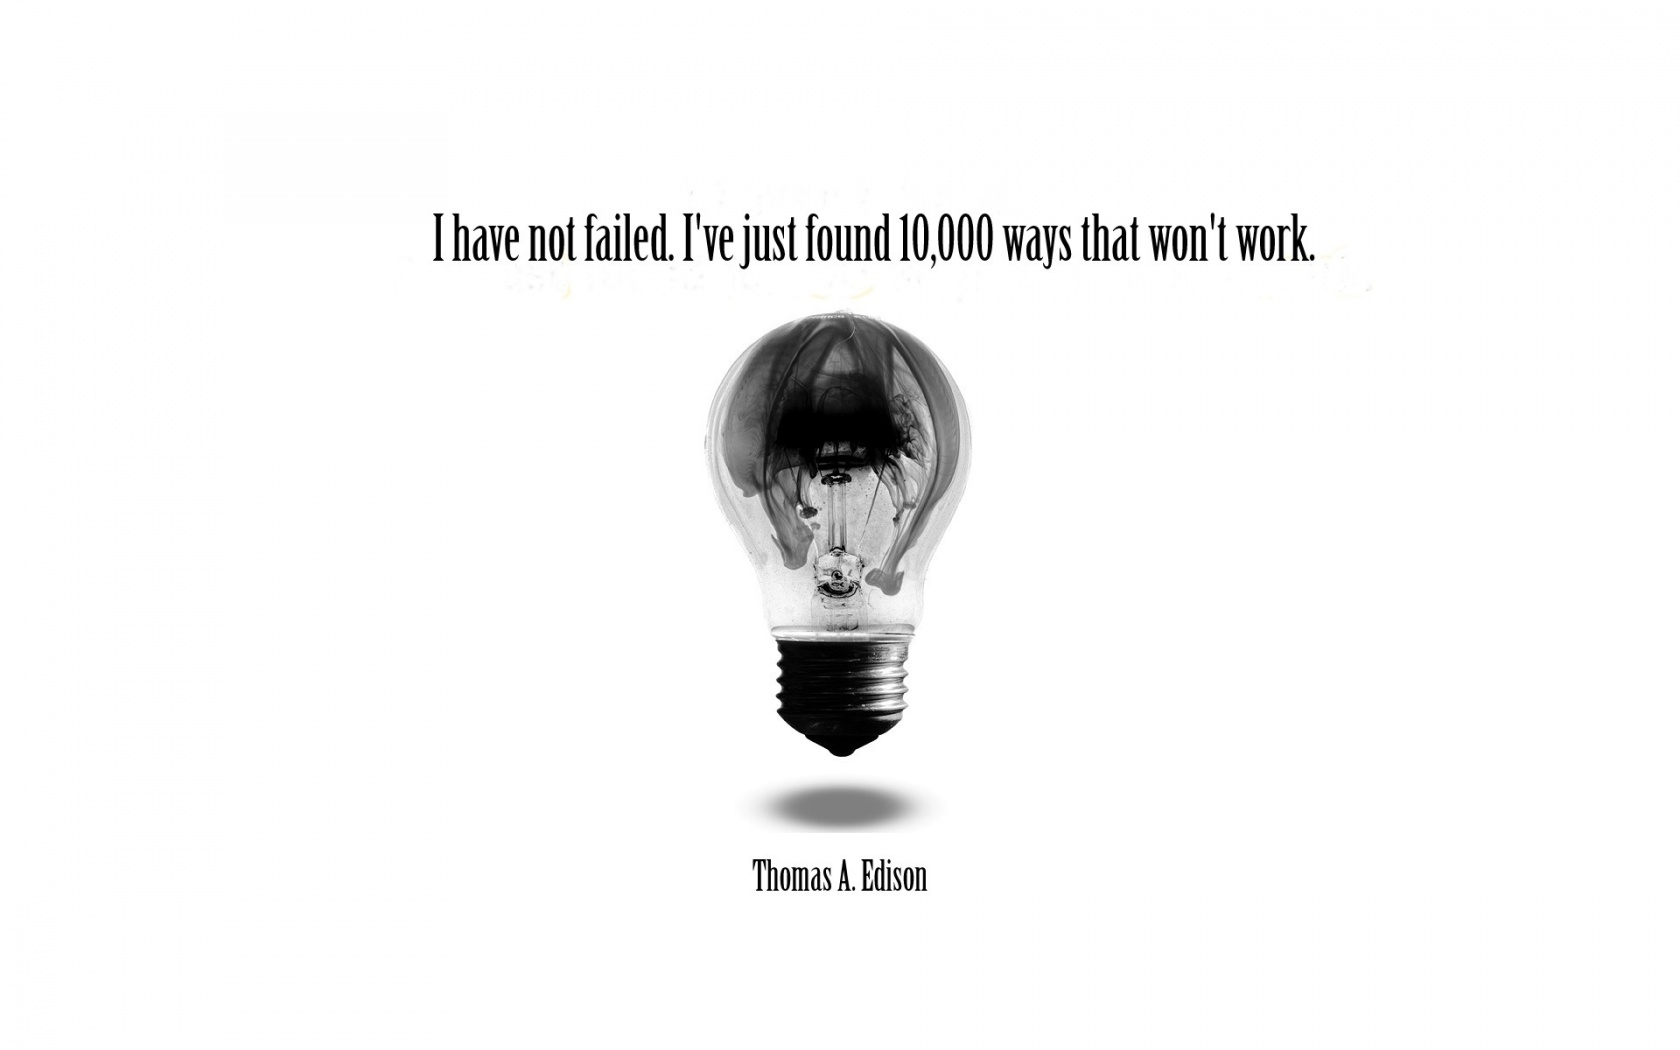 1680x1050 edison quote desktop pc and mac wallpaper